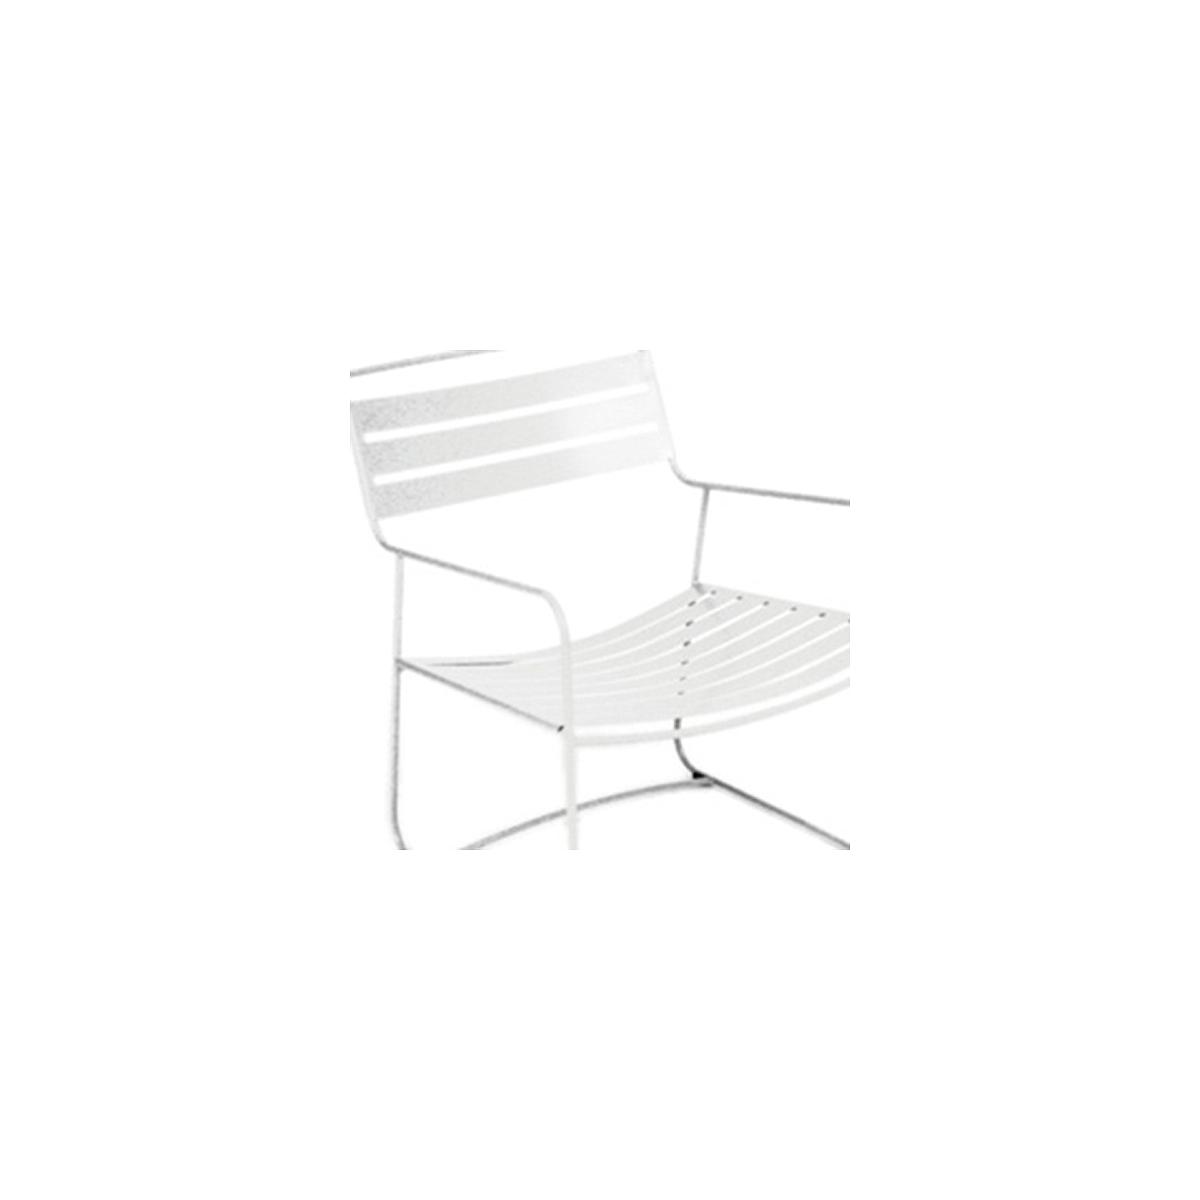 SURPRISING by Fermob Fauteuil bas Blanc coton